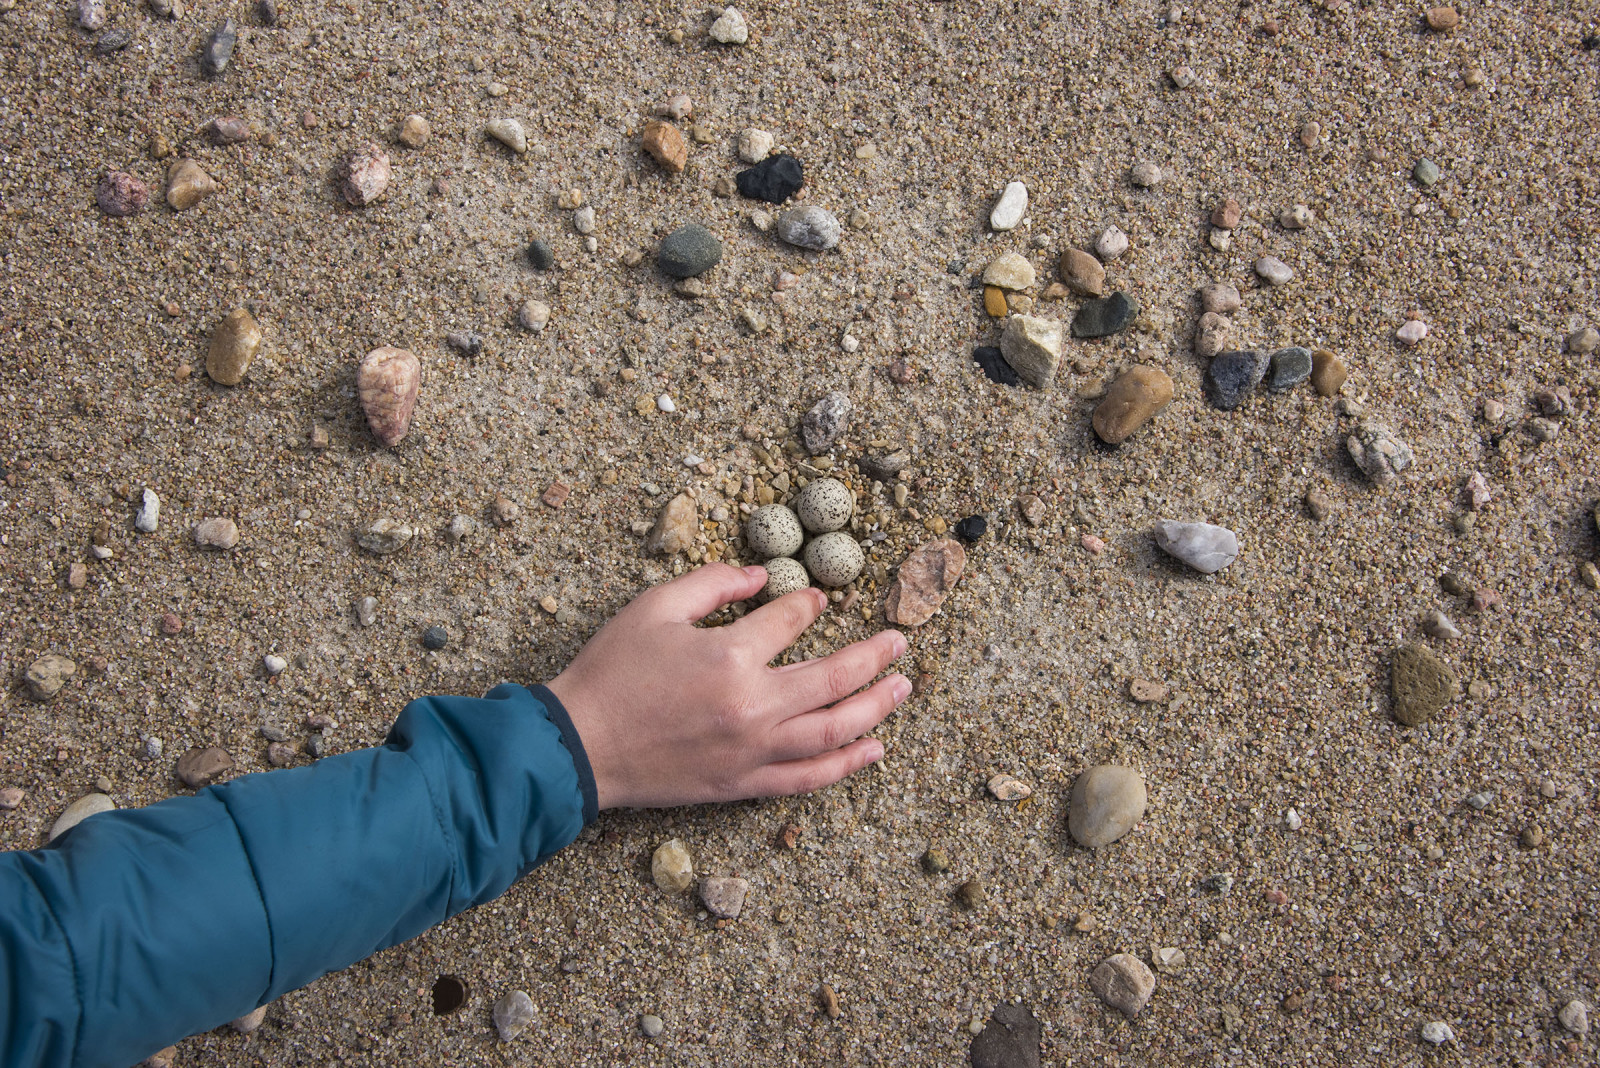 A biologist carefully places the piping plover egg back into its nest. This image shows how tiny these eggs when compared to a hand. (Michael Forsberg)